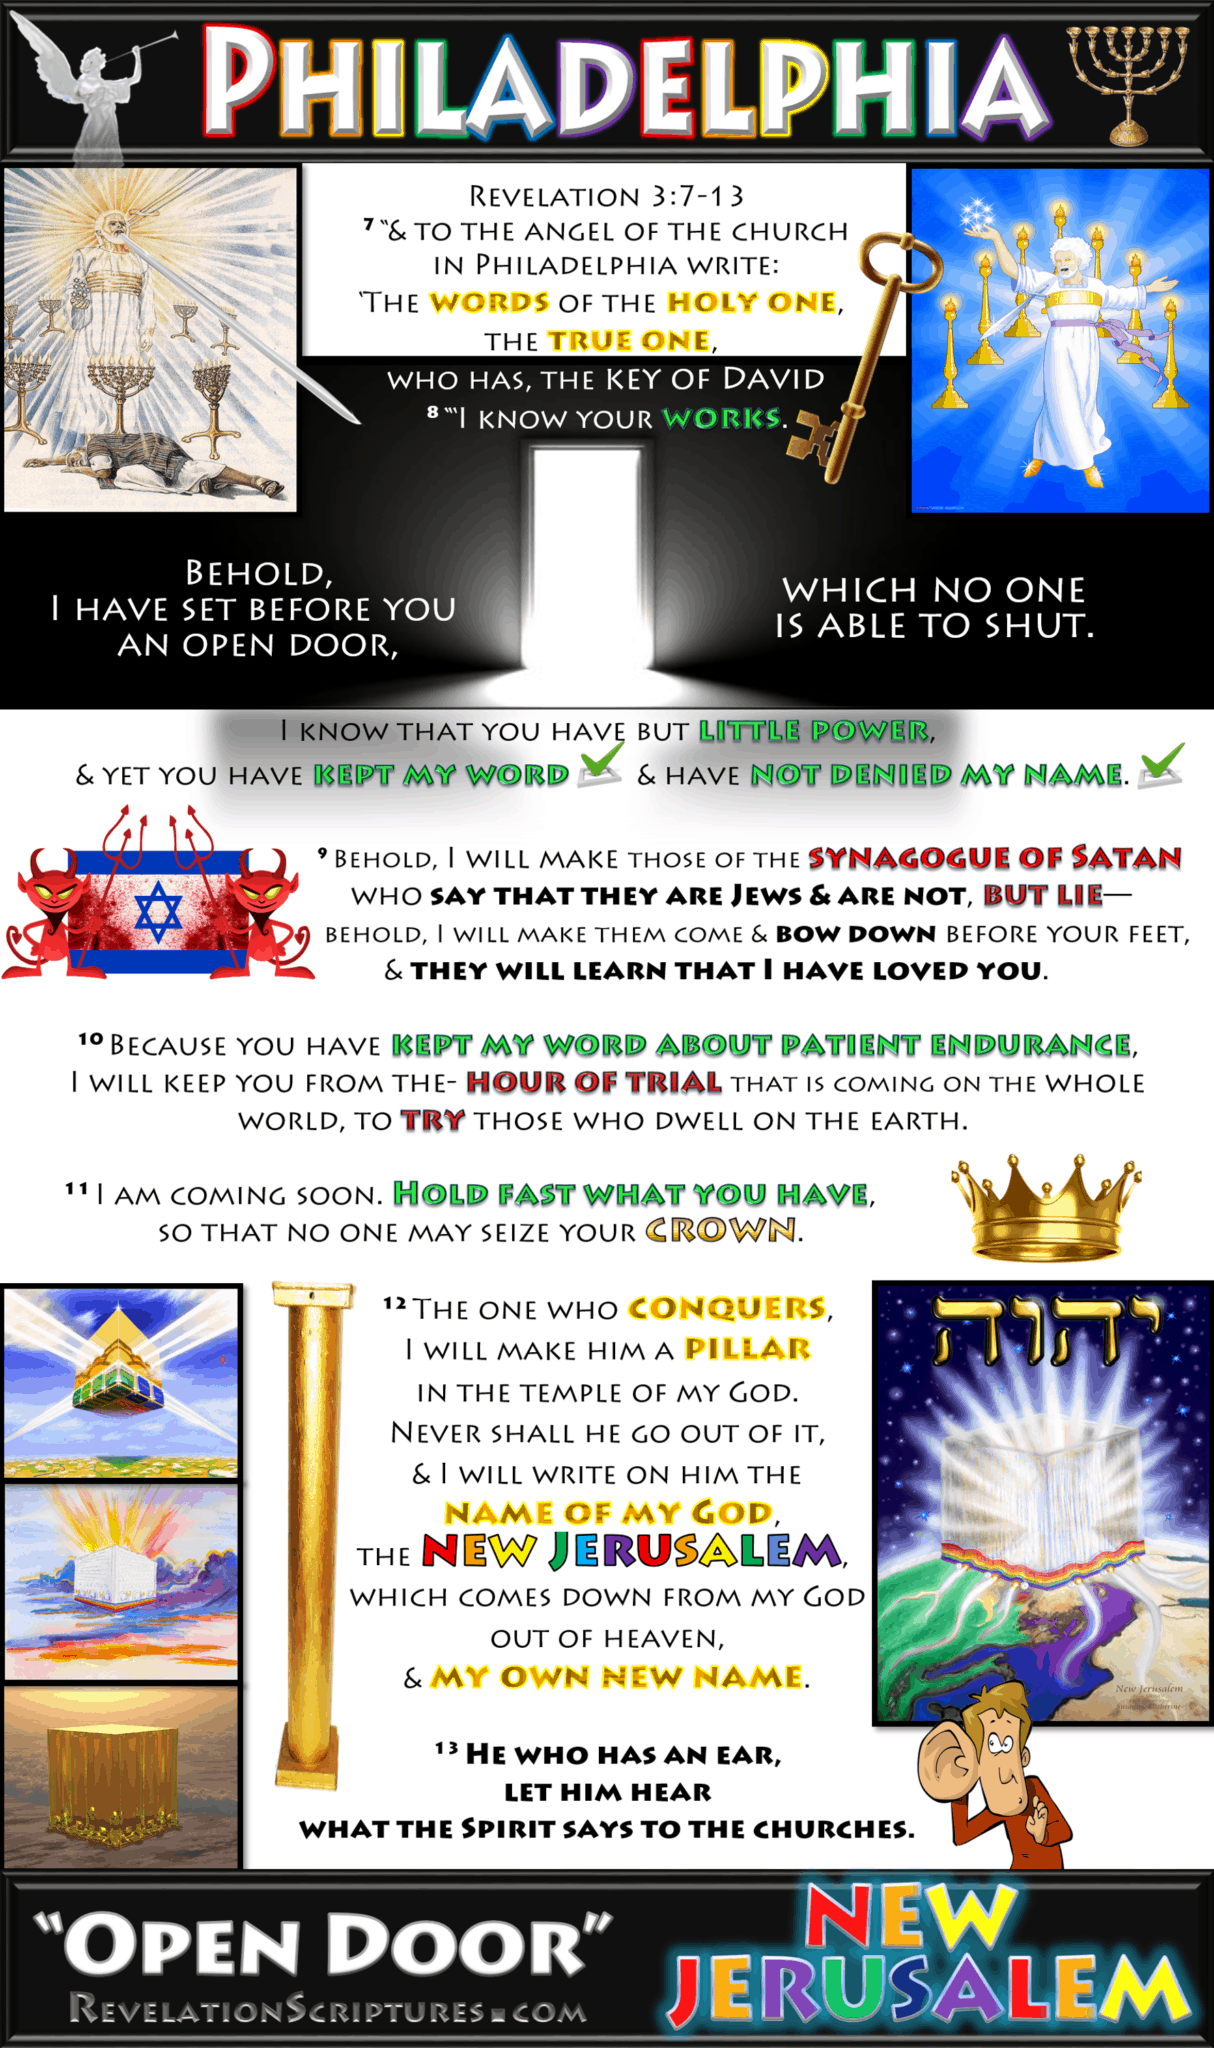 Philadelphia,Revelation,Book of Revelation,7 Churches,7 Lampstands,Key of David,open Door,synagogue of Satan,crown,patience endurance,conquer,overcome,victorious,New Jerusalem,Pillar,New Name,study guide,cross reference